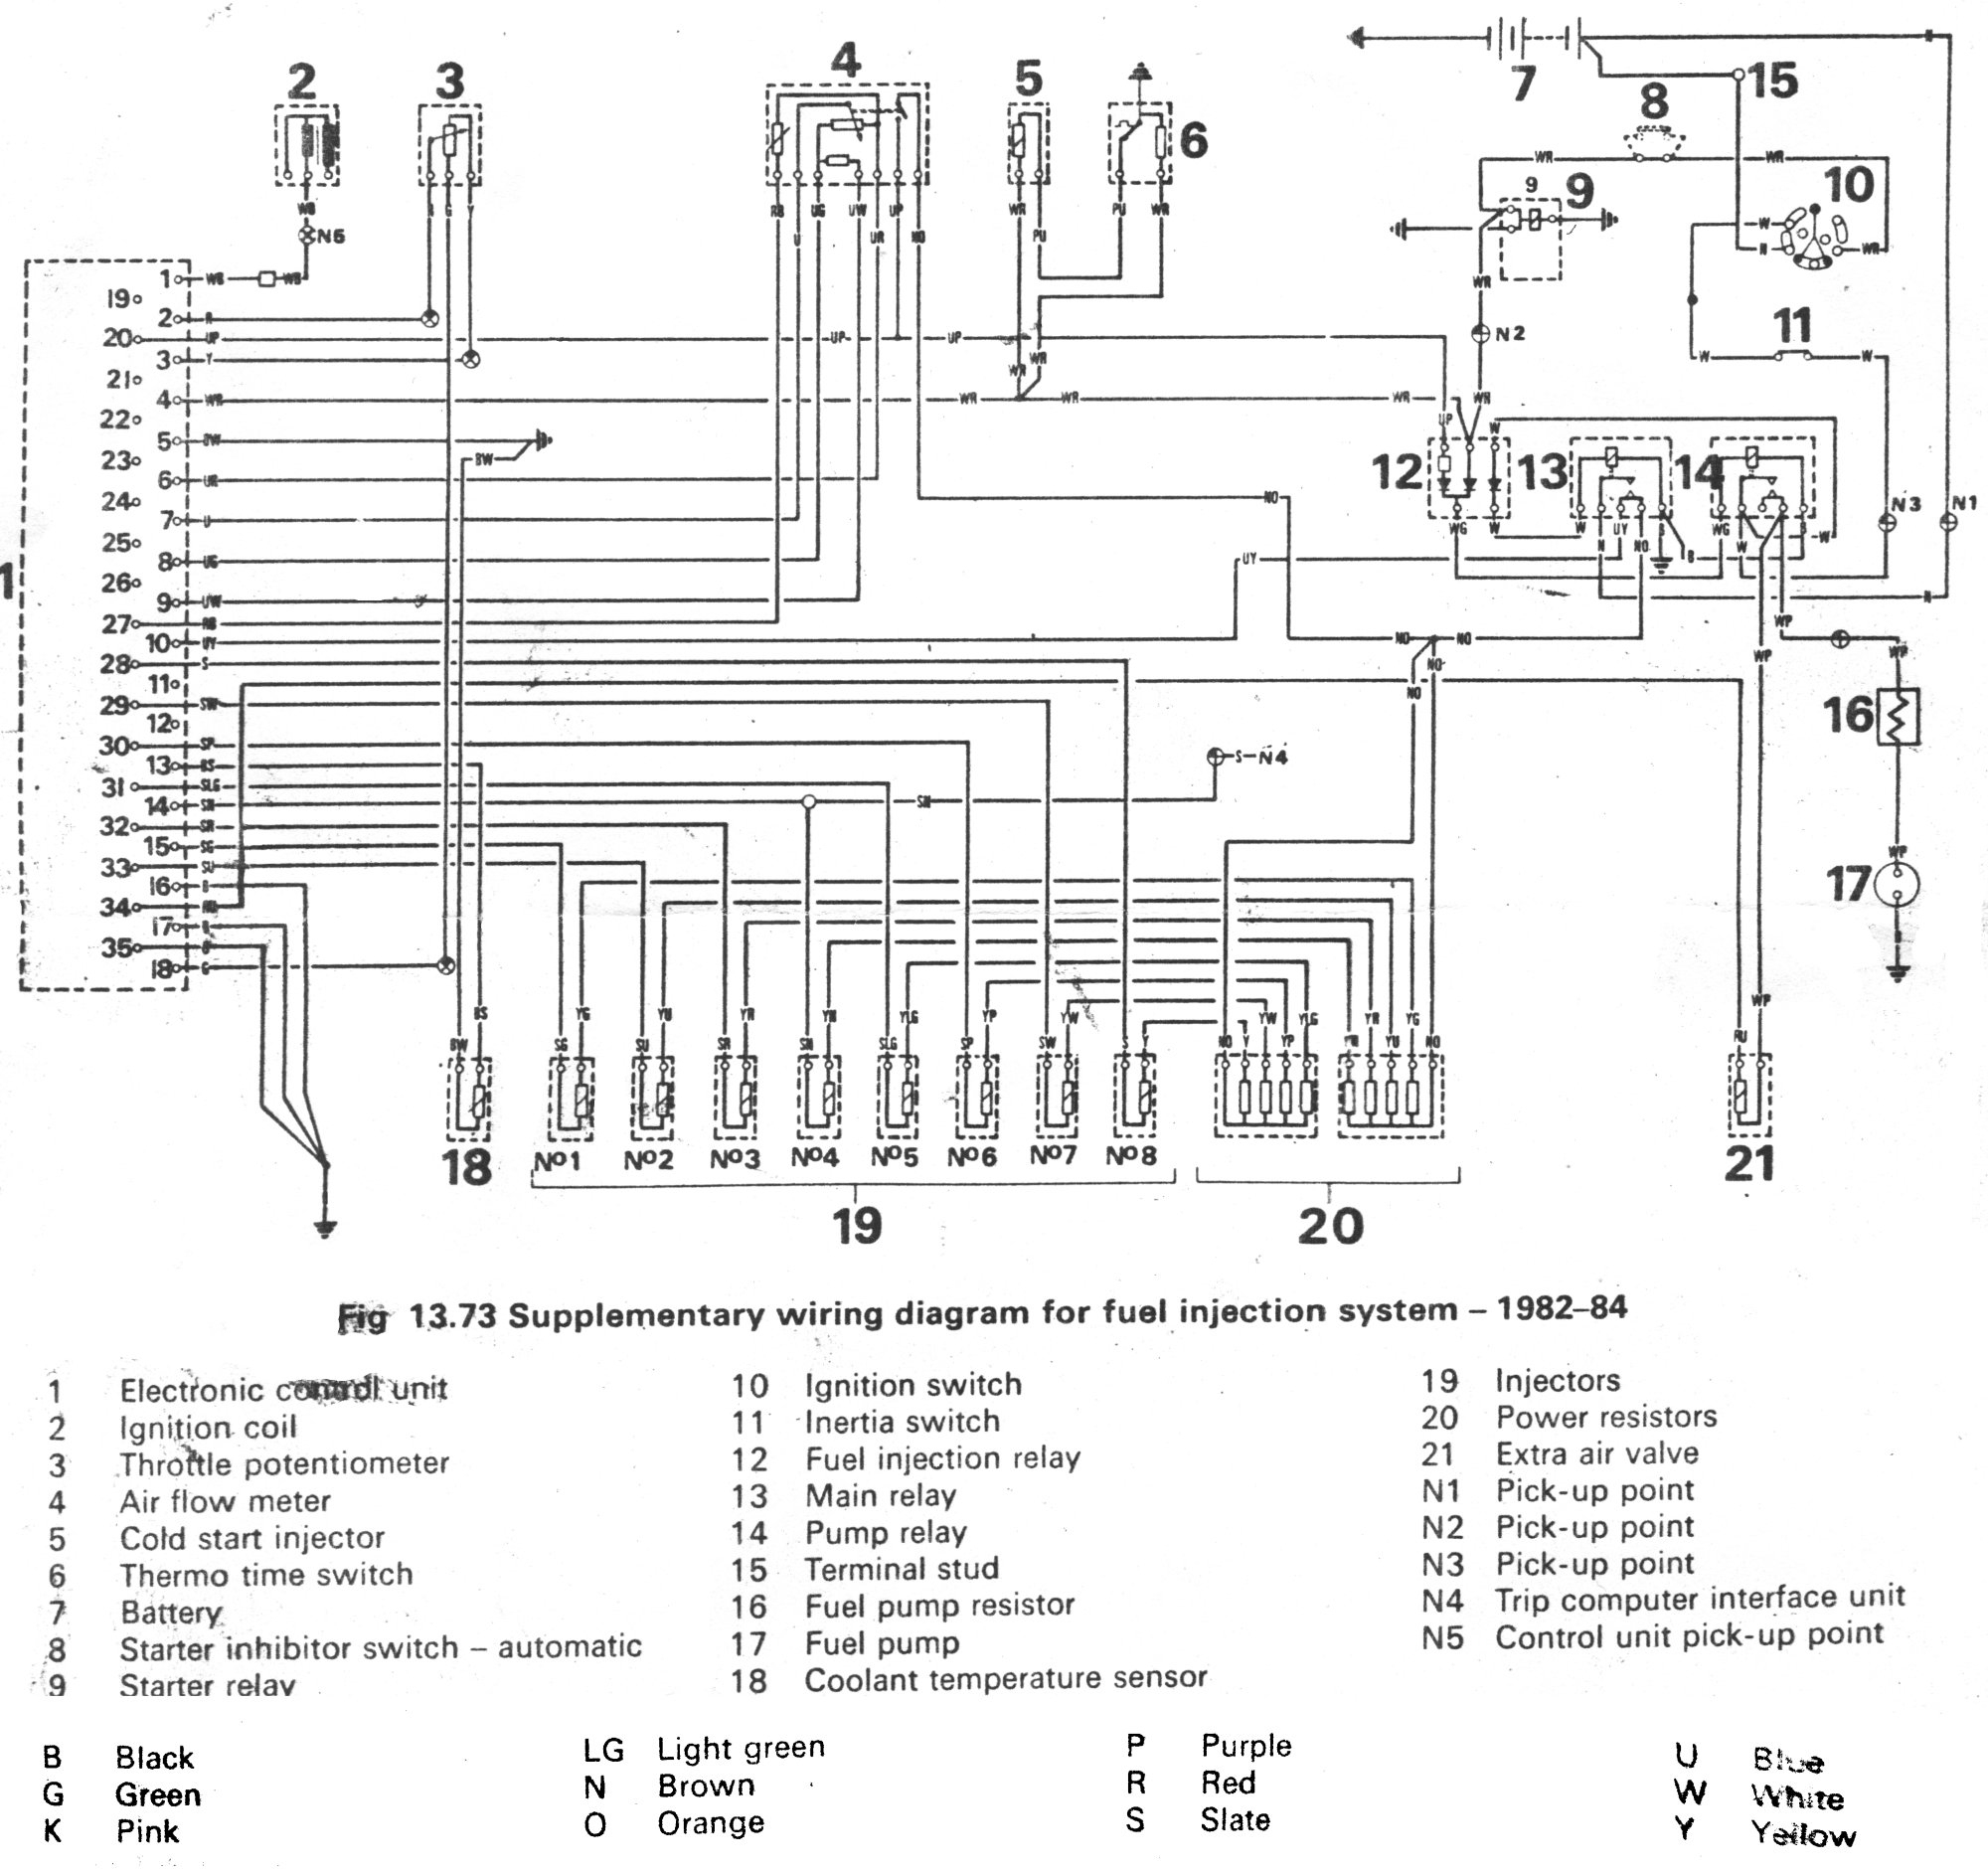 land rover defender trailer wiring diagram land rover fuel pump diagram | wiring diagram land rover defender 90 wiring diagram